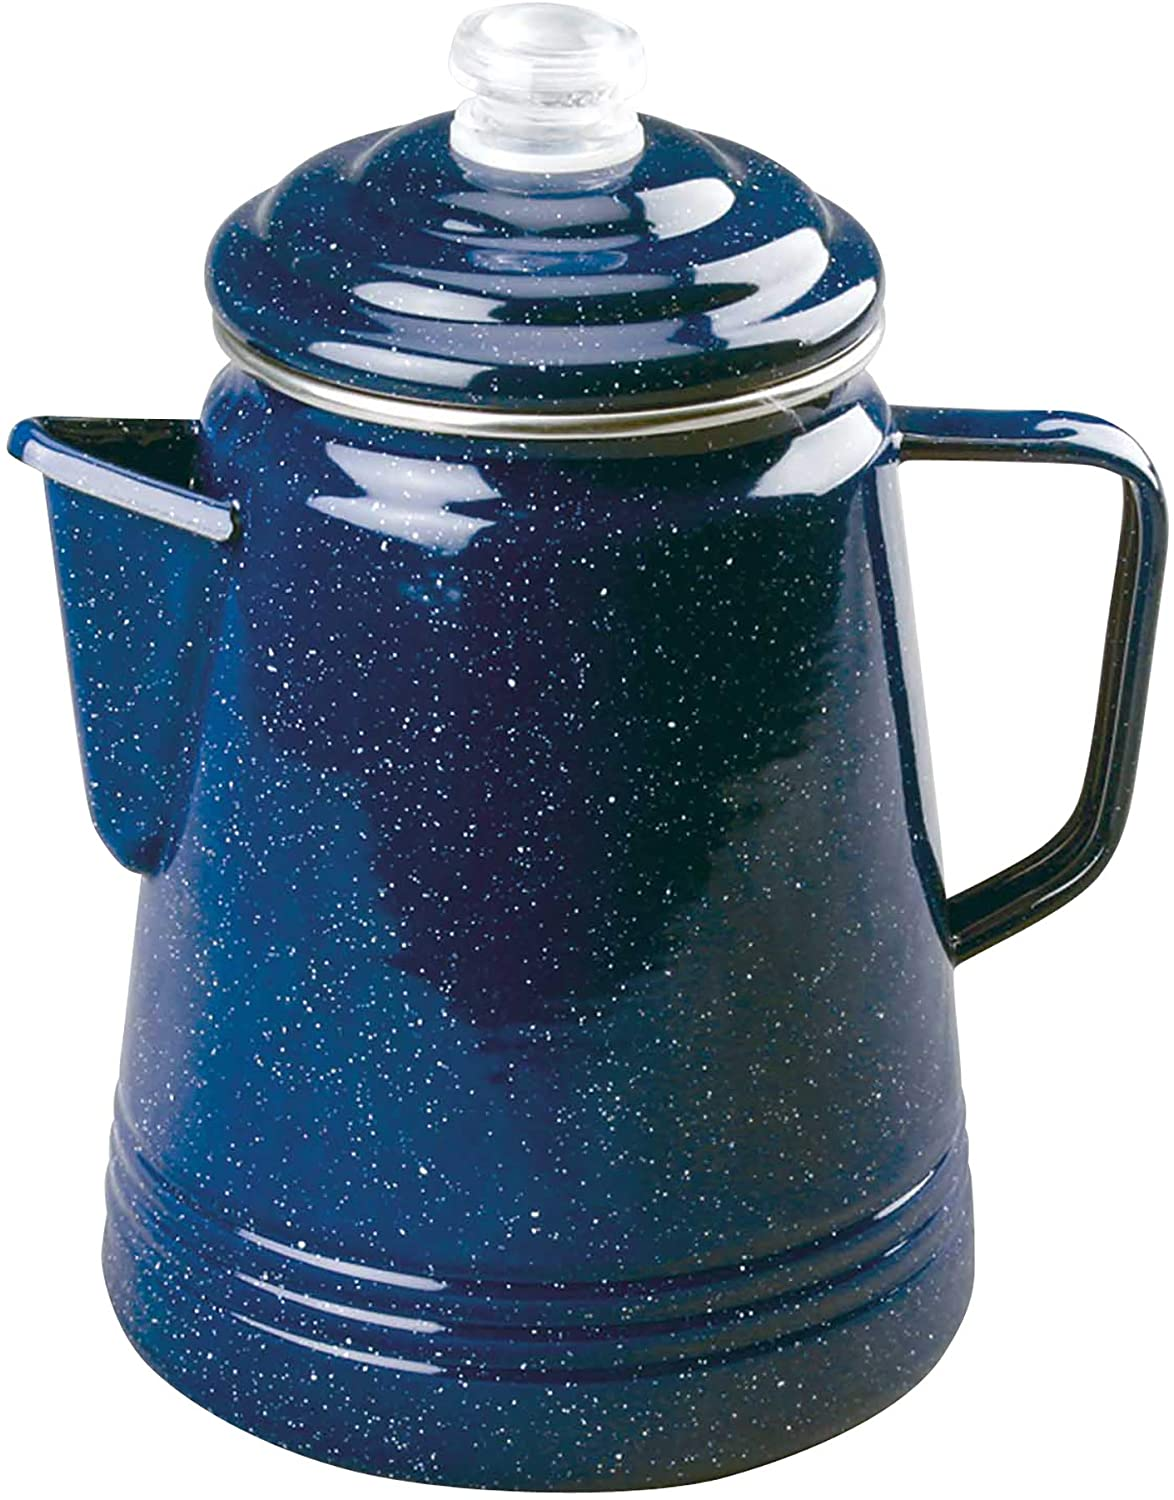 This is an image of a coffee percolator in shiny blue with white speckles all over it. With handle and snout.